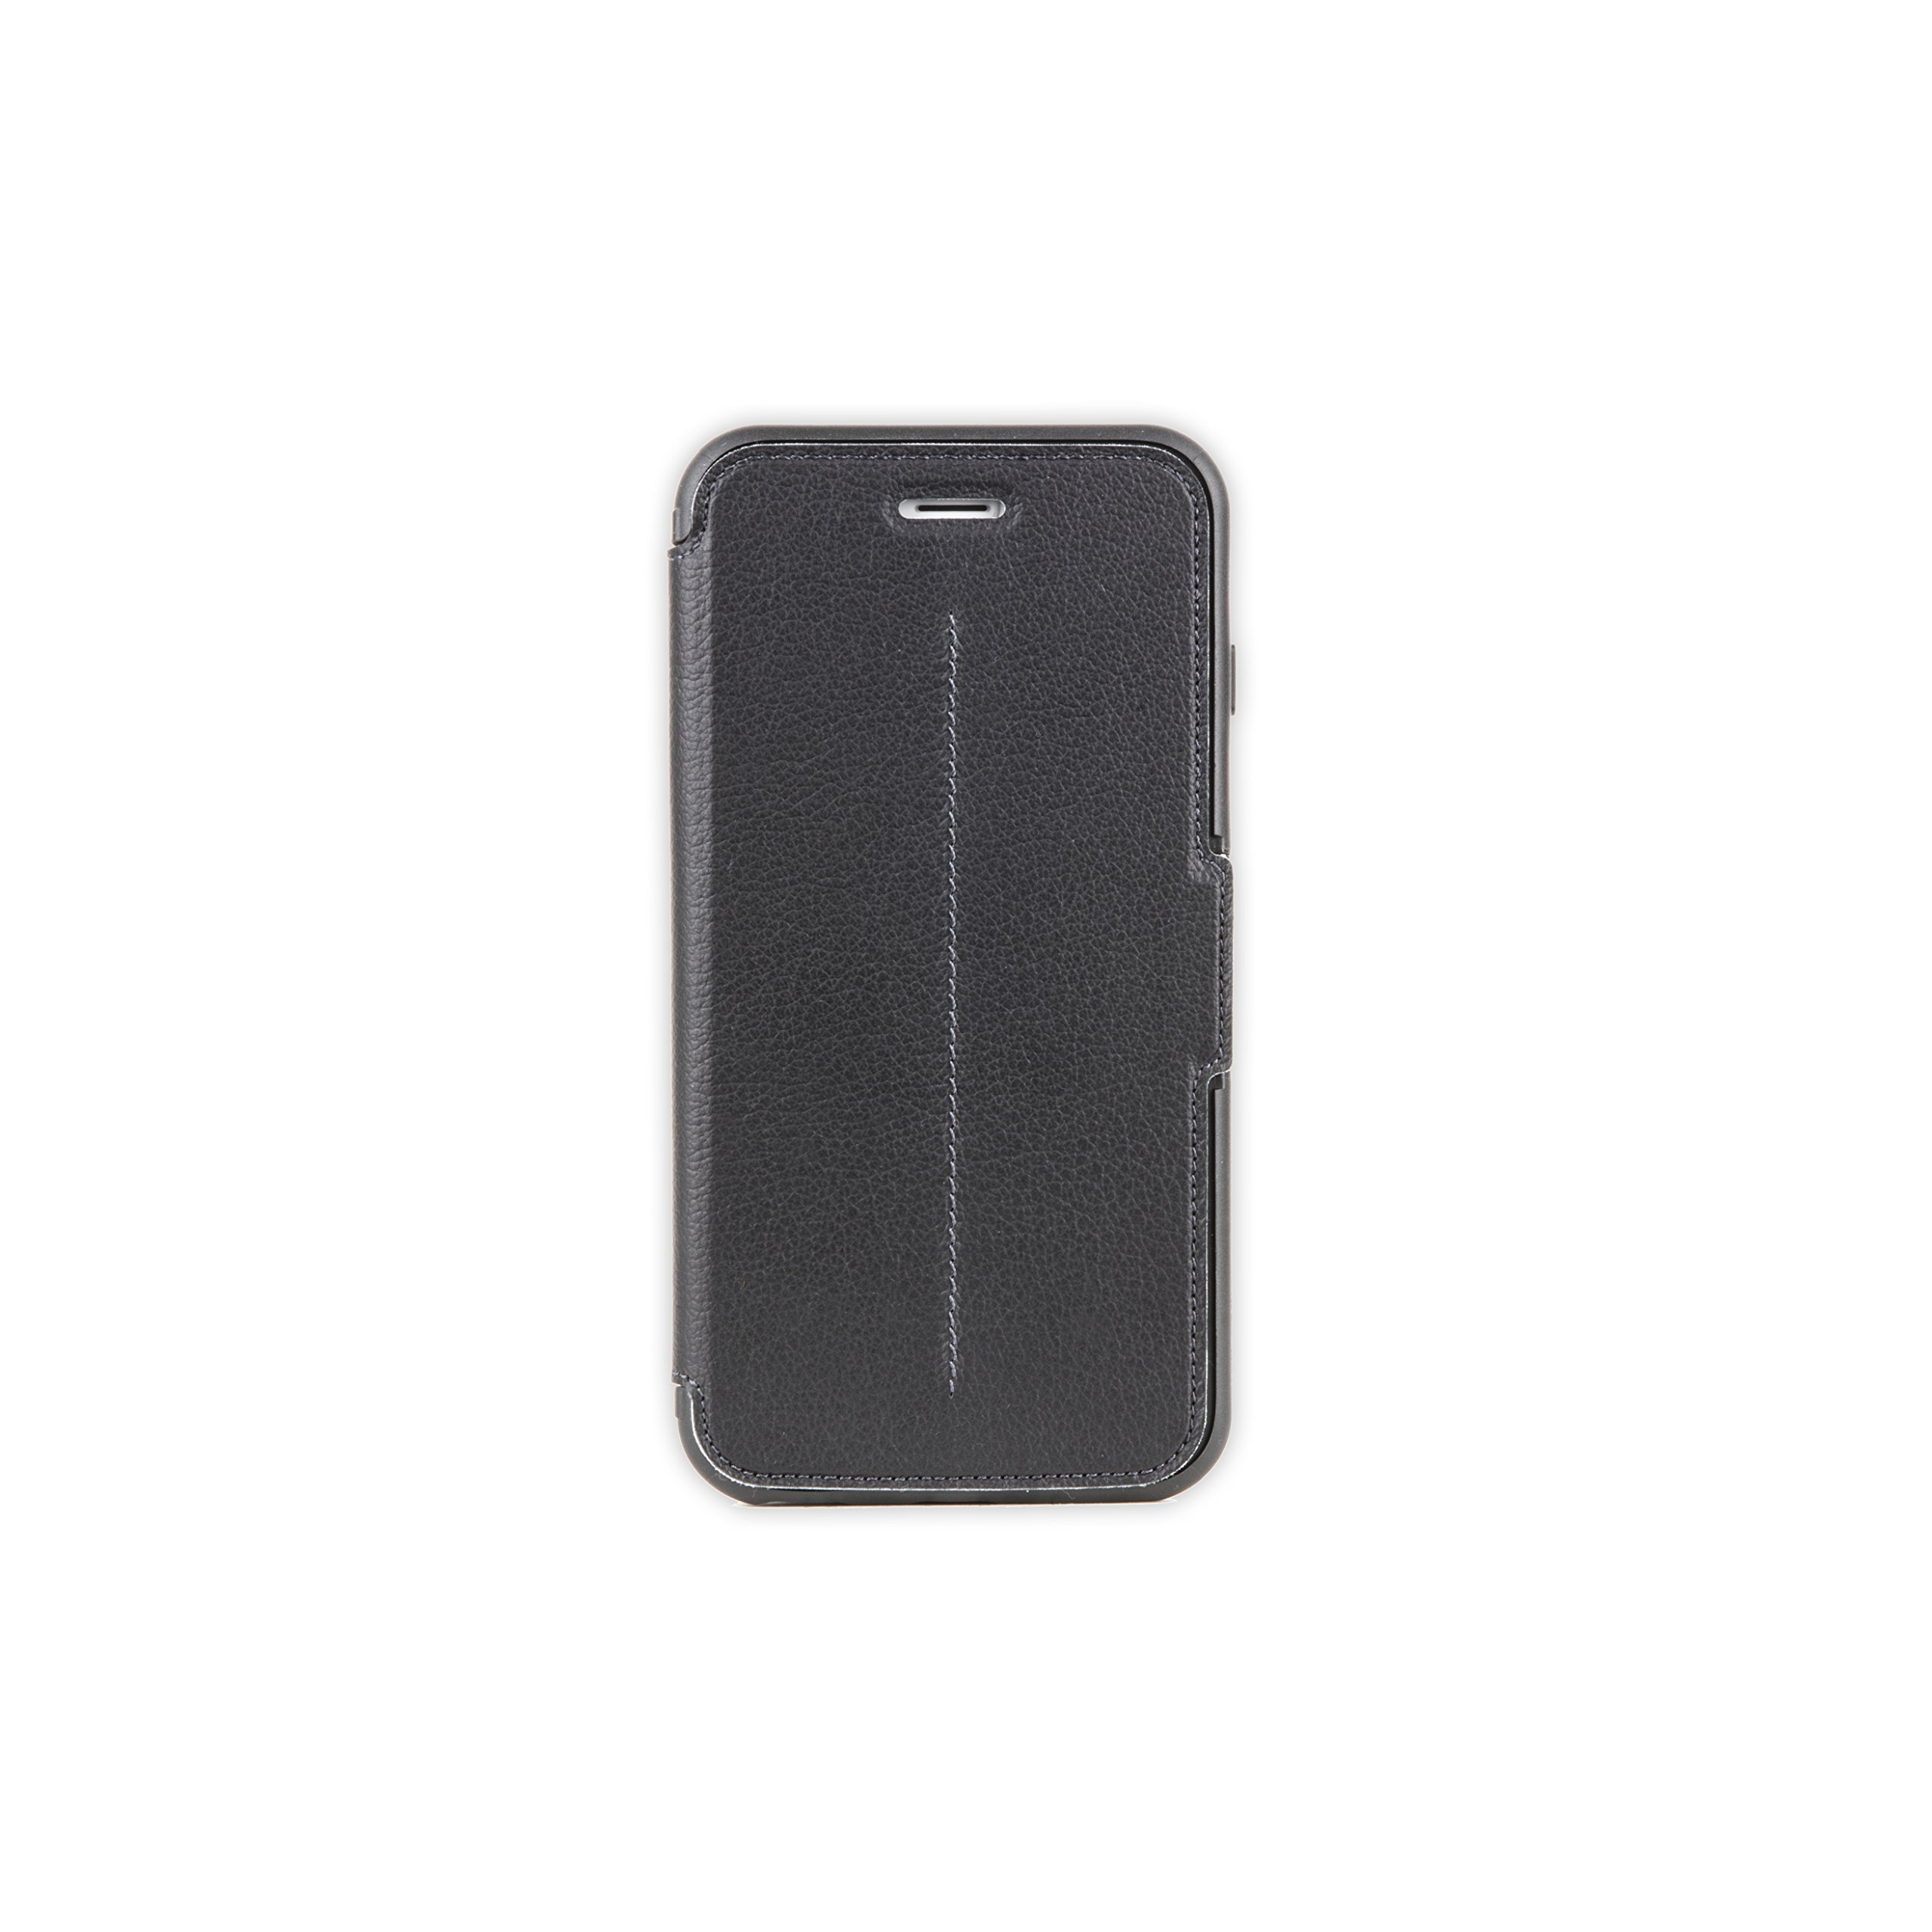 OtterBox STRADA SERIES iPhone 6 Plus/6S Plus Case- Retail Packaging - NEW MINIMALISM (BLACK/DARK GREY/BLACK LTHR FOLIO)